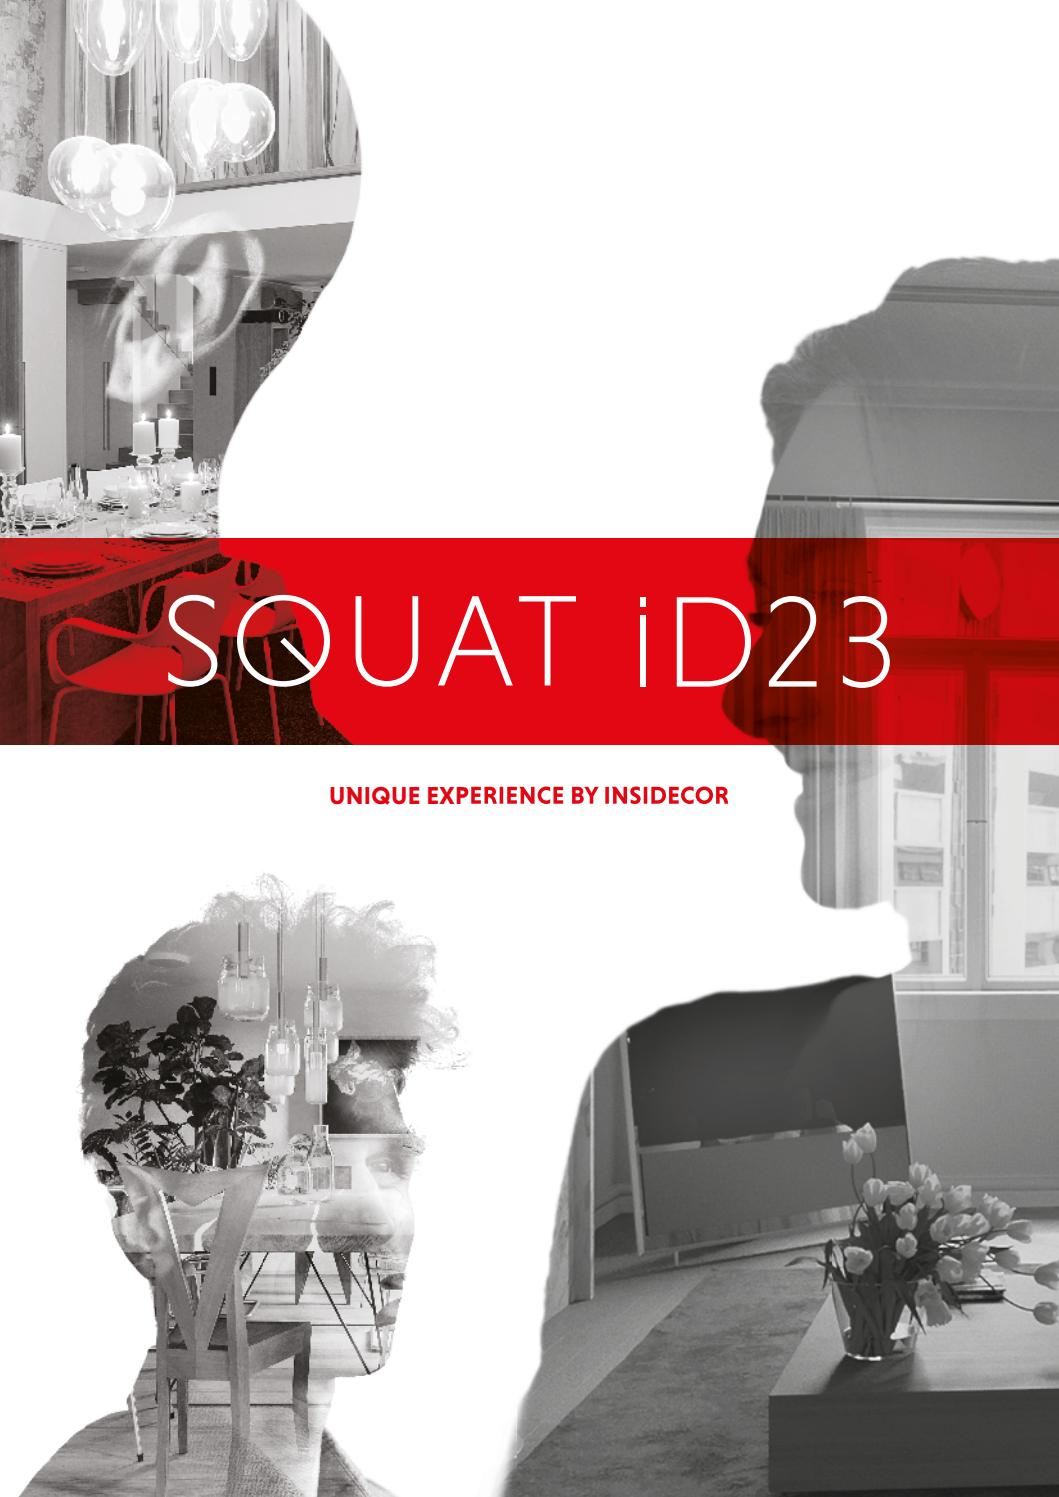 SQUAT iD23 - A unique experience by insidecor by insidecor - issuu 533729167d